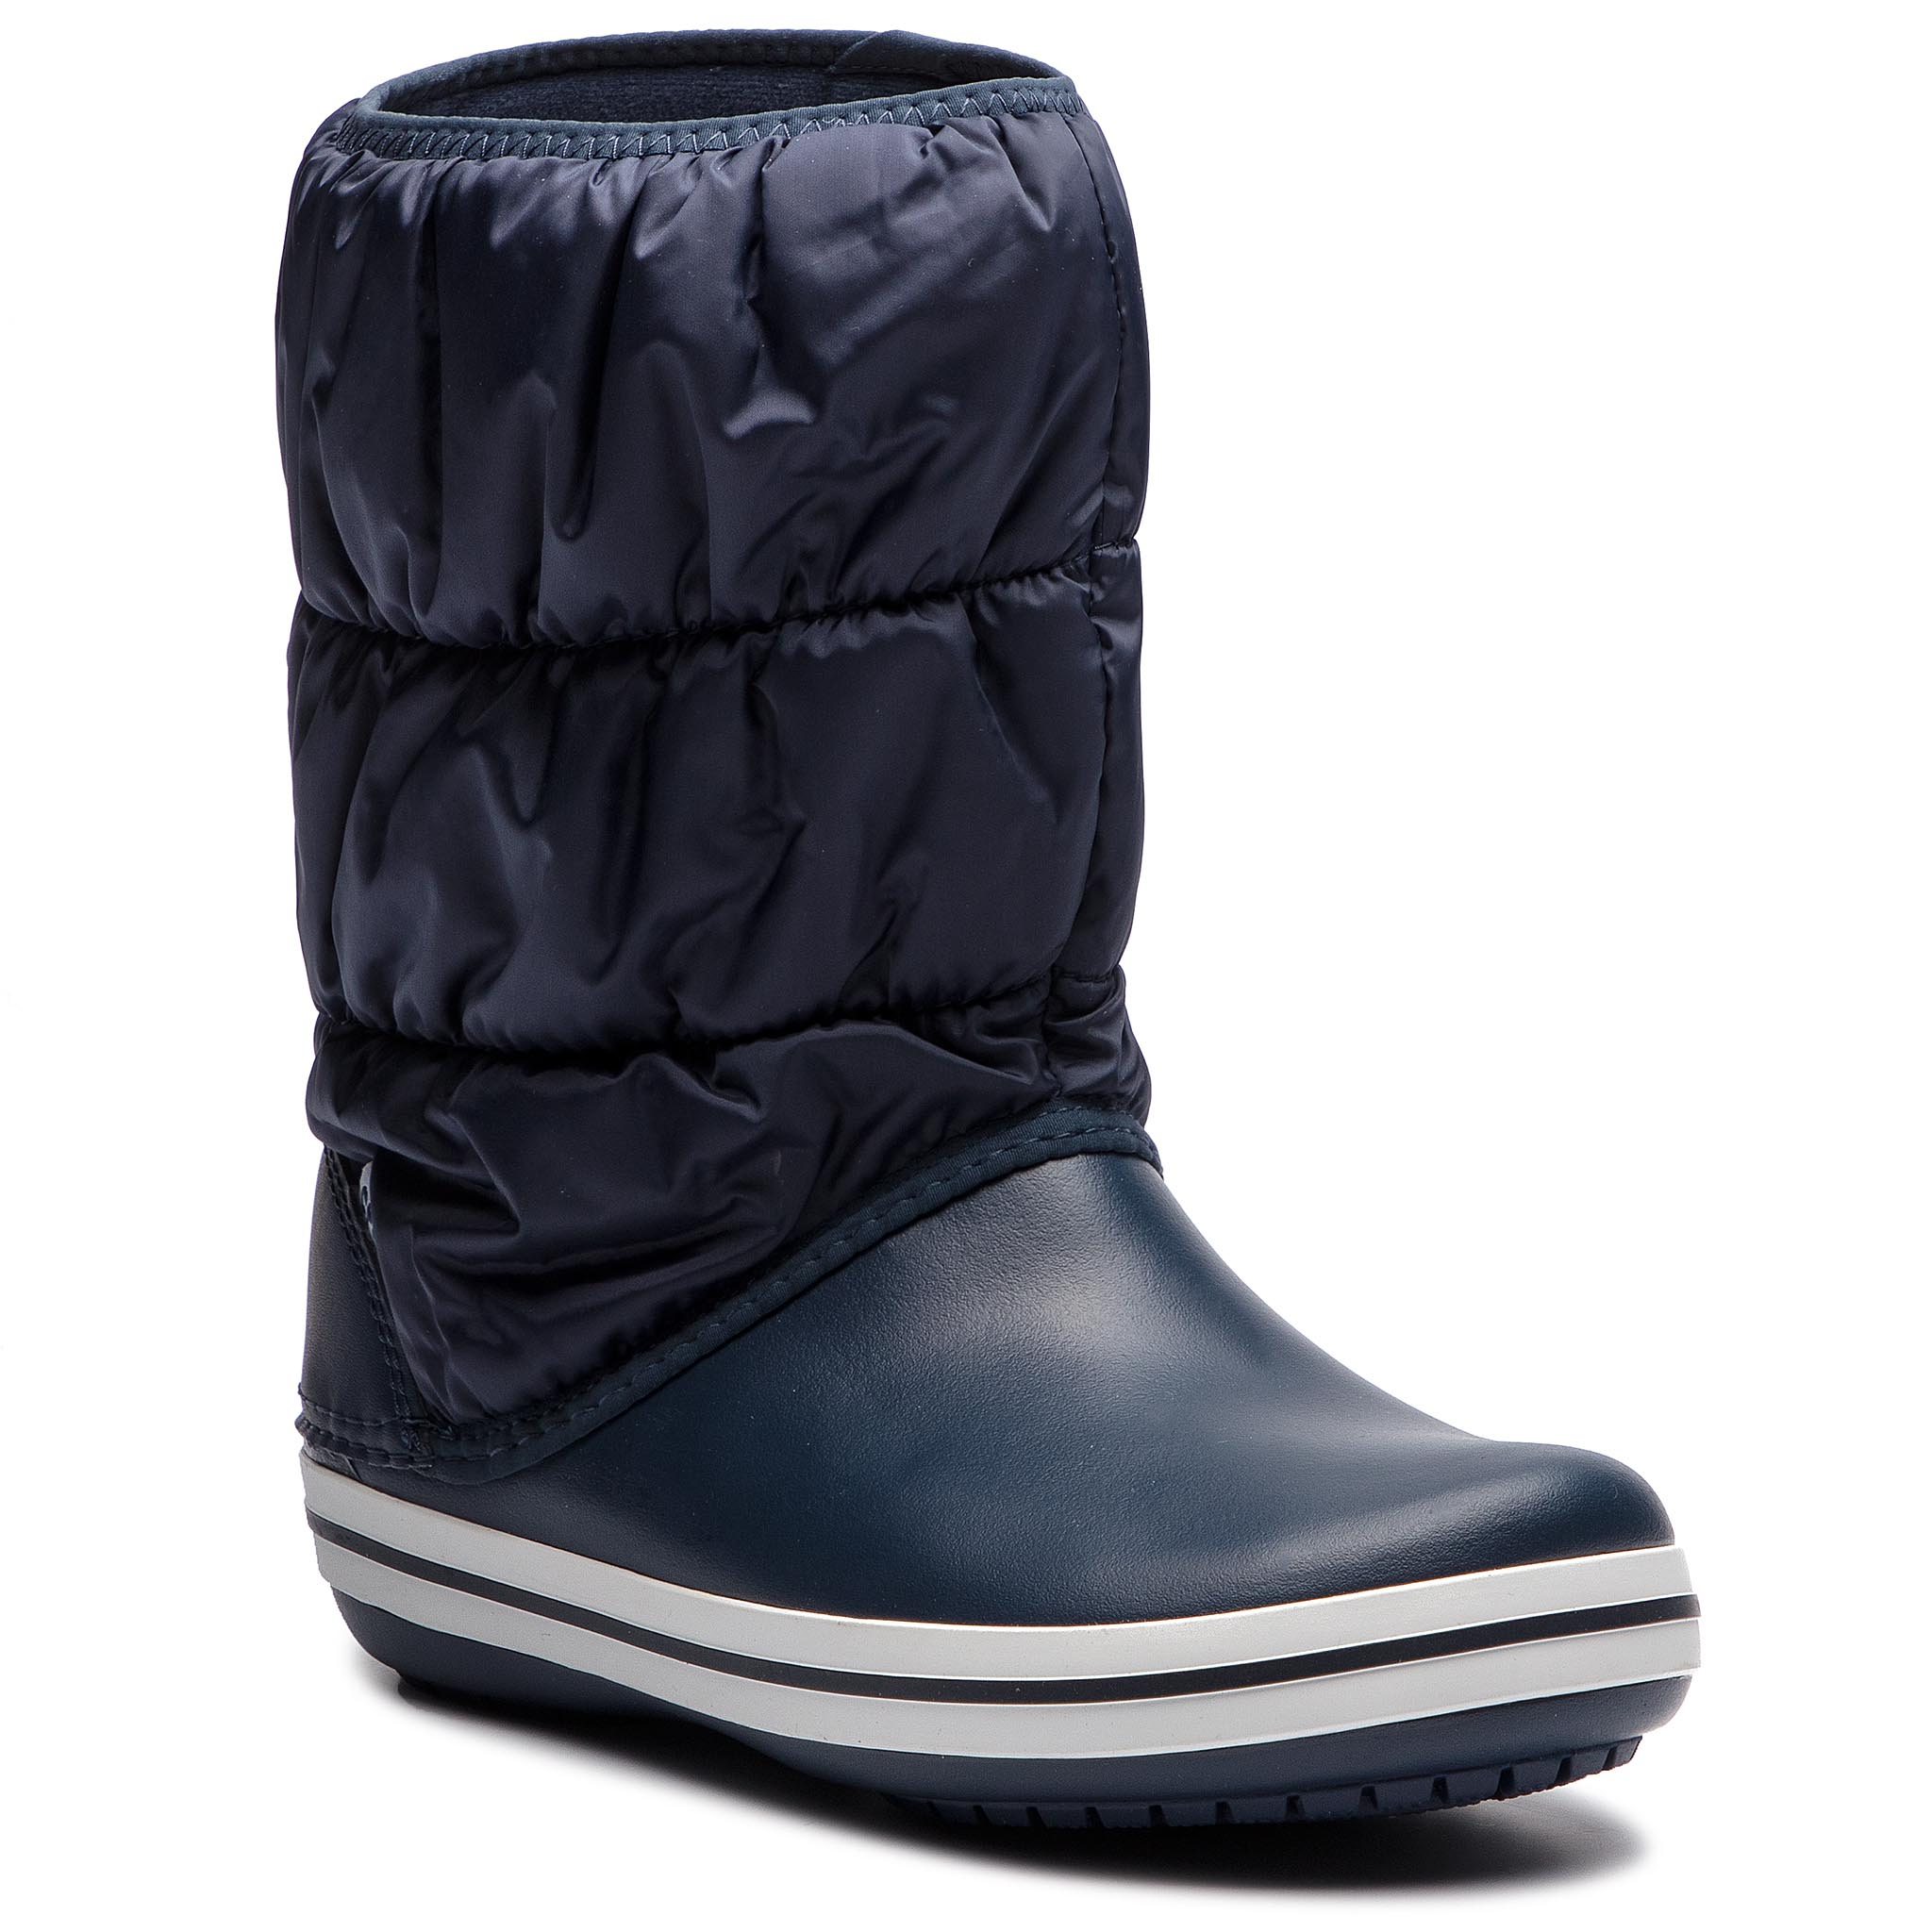 3a9f380214b Sněhule CROCS - Winter Puff Boot 14614 Navy/White